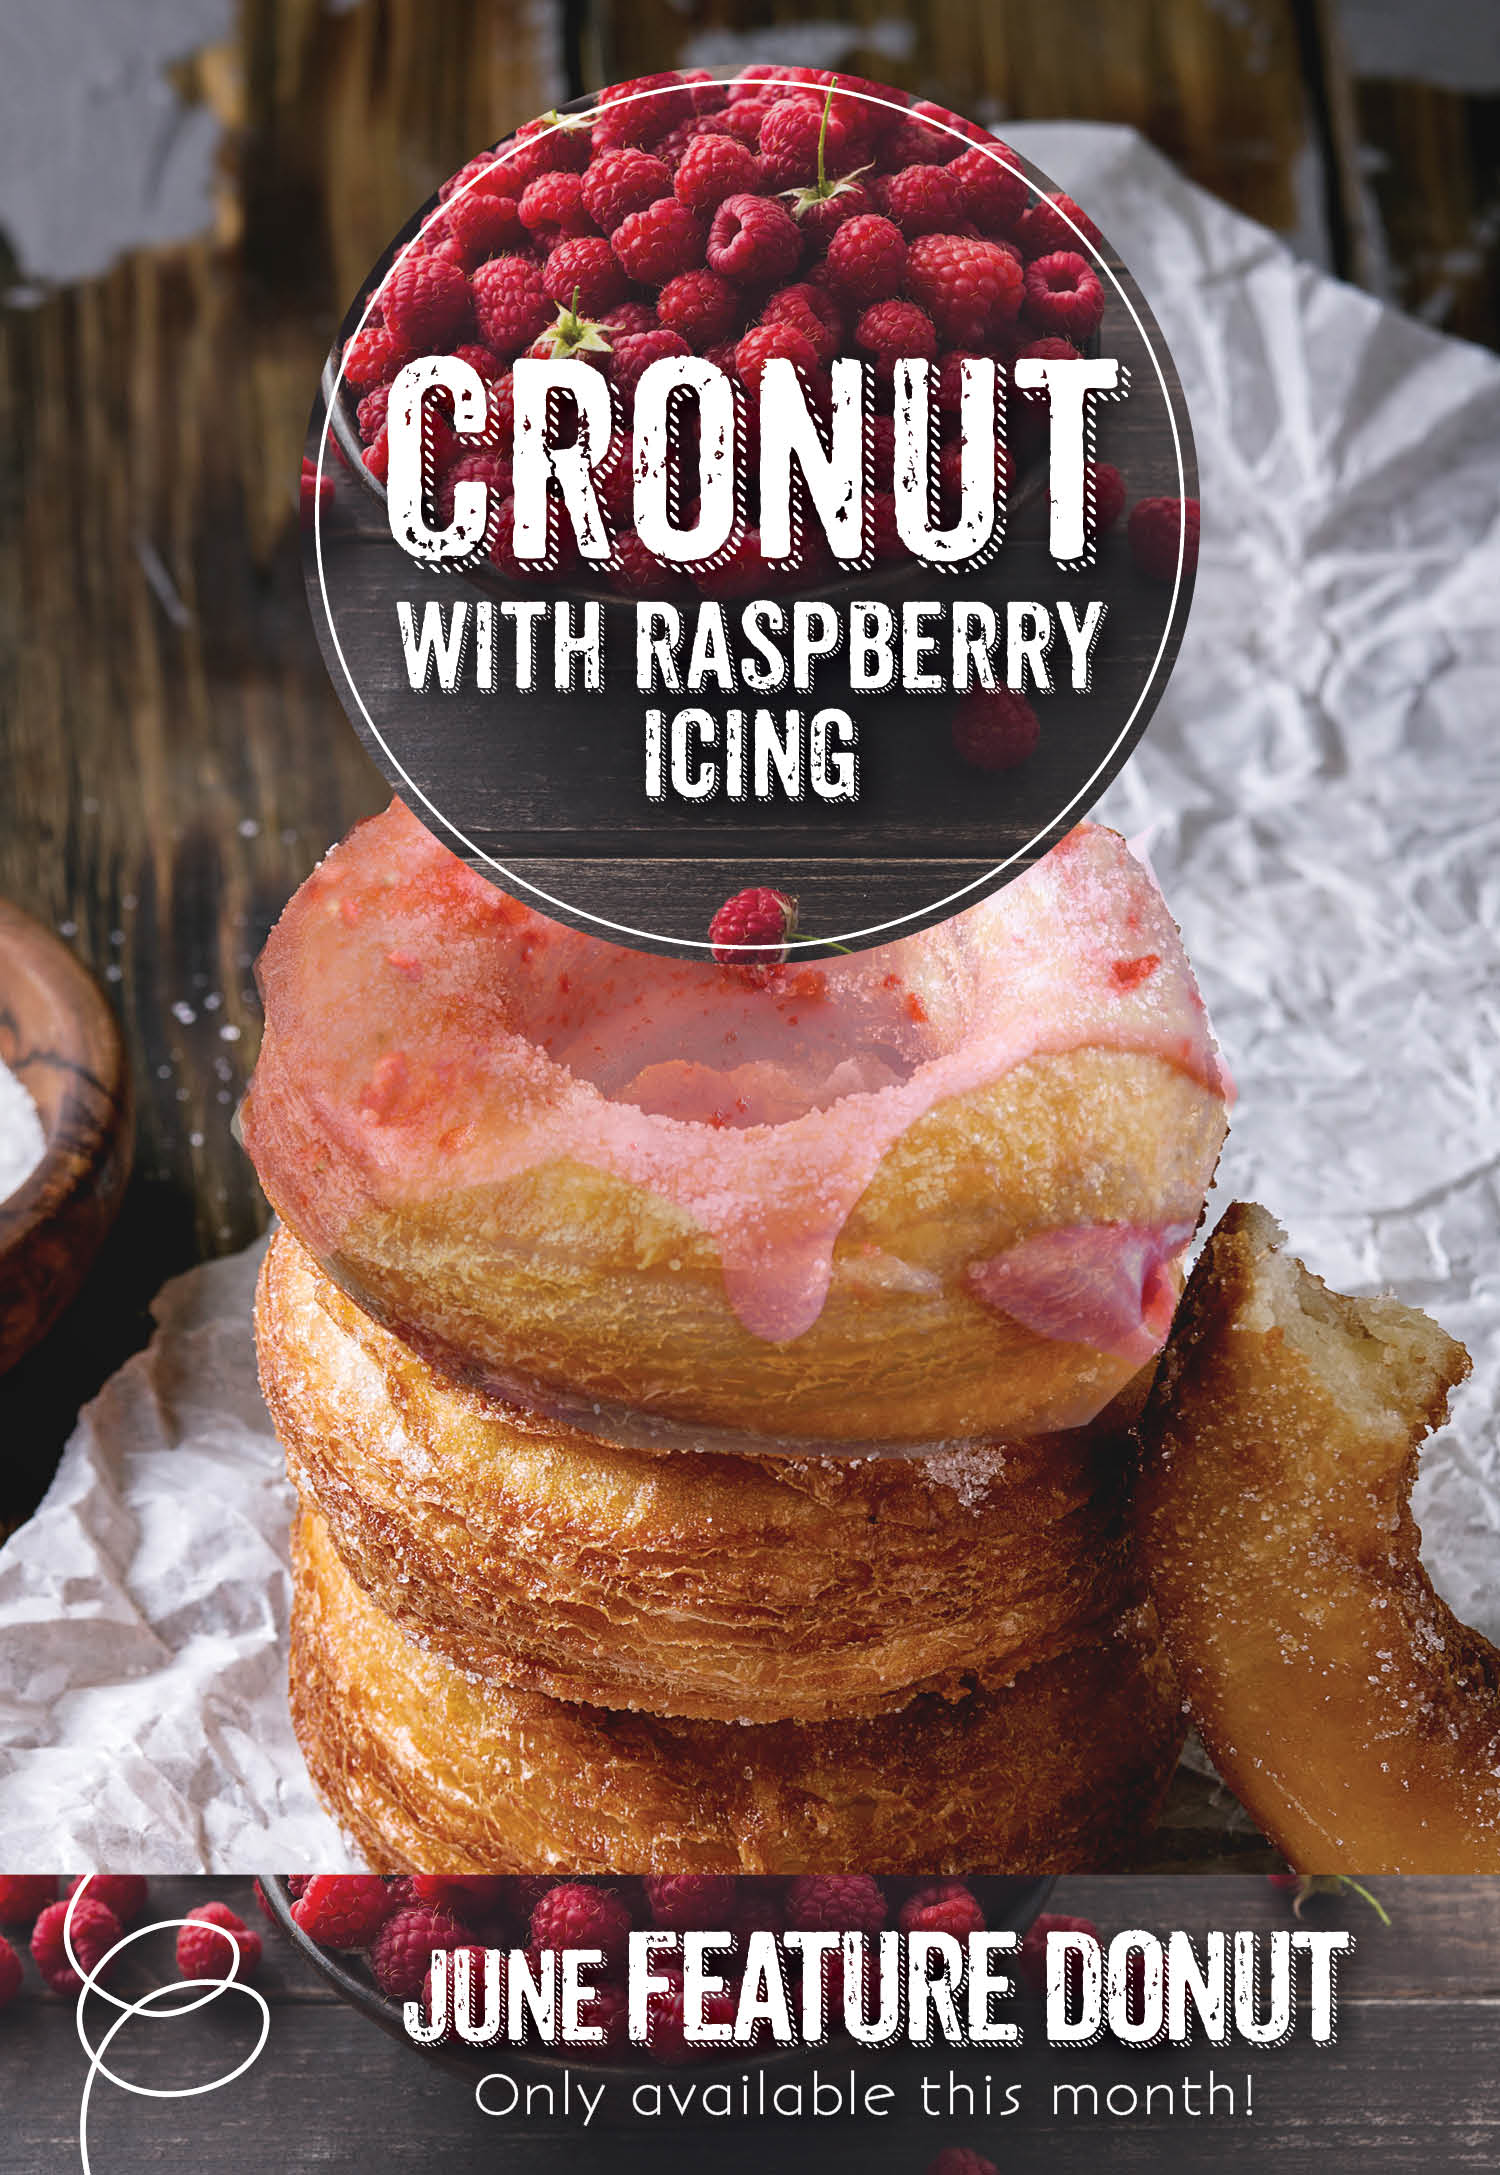 Invermere Bakery Features a Cronut with Raspberry Icing